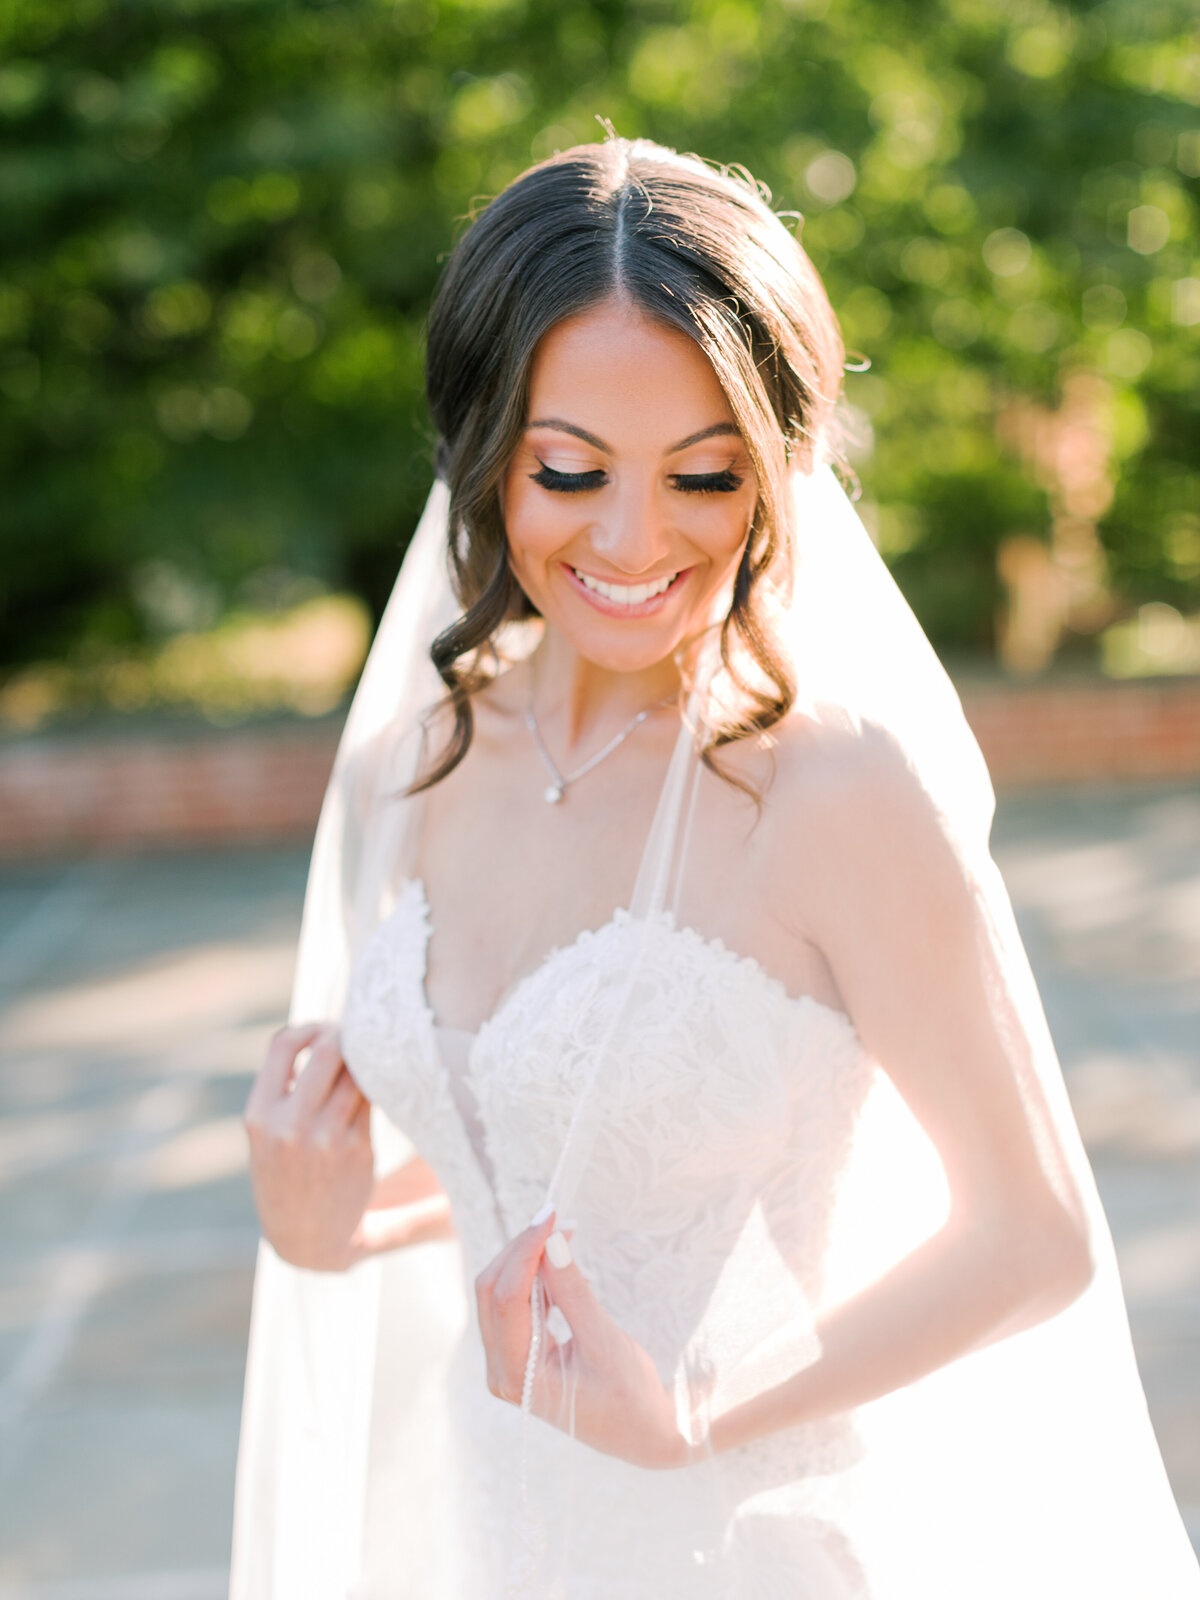 ashergardner-carltun-wedding-preview-40